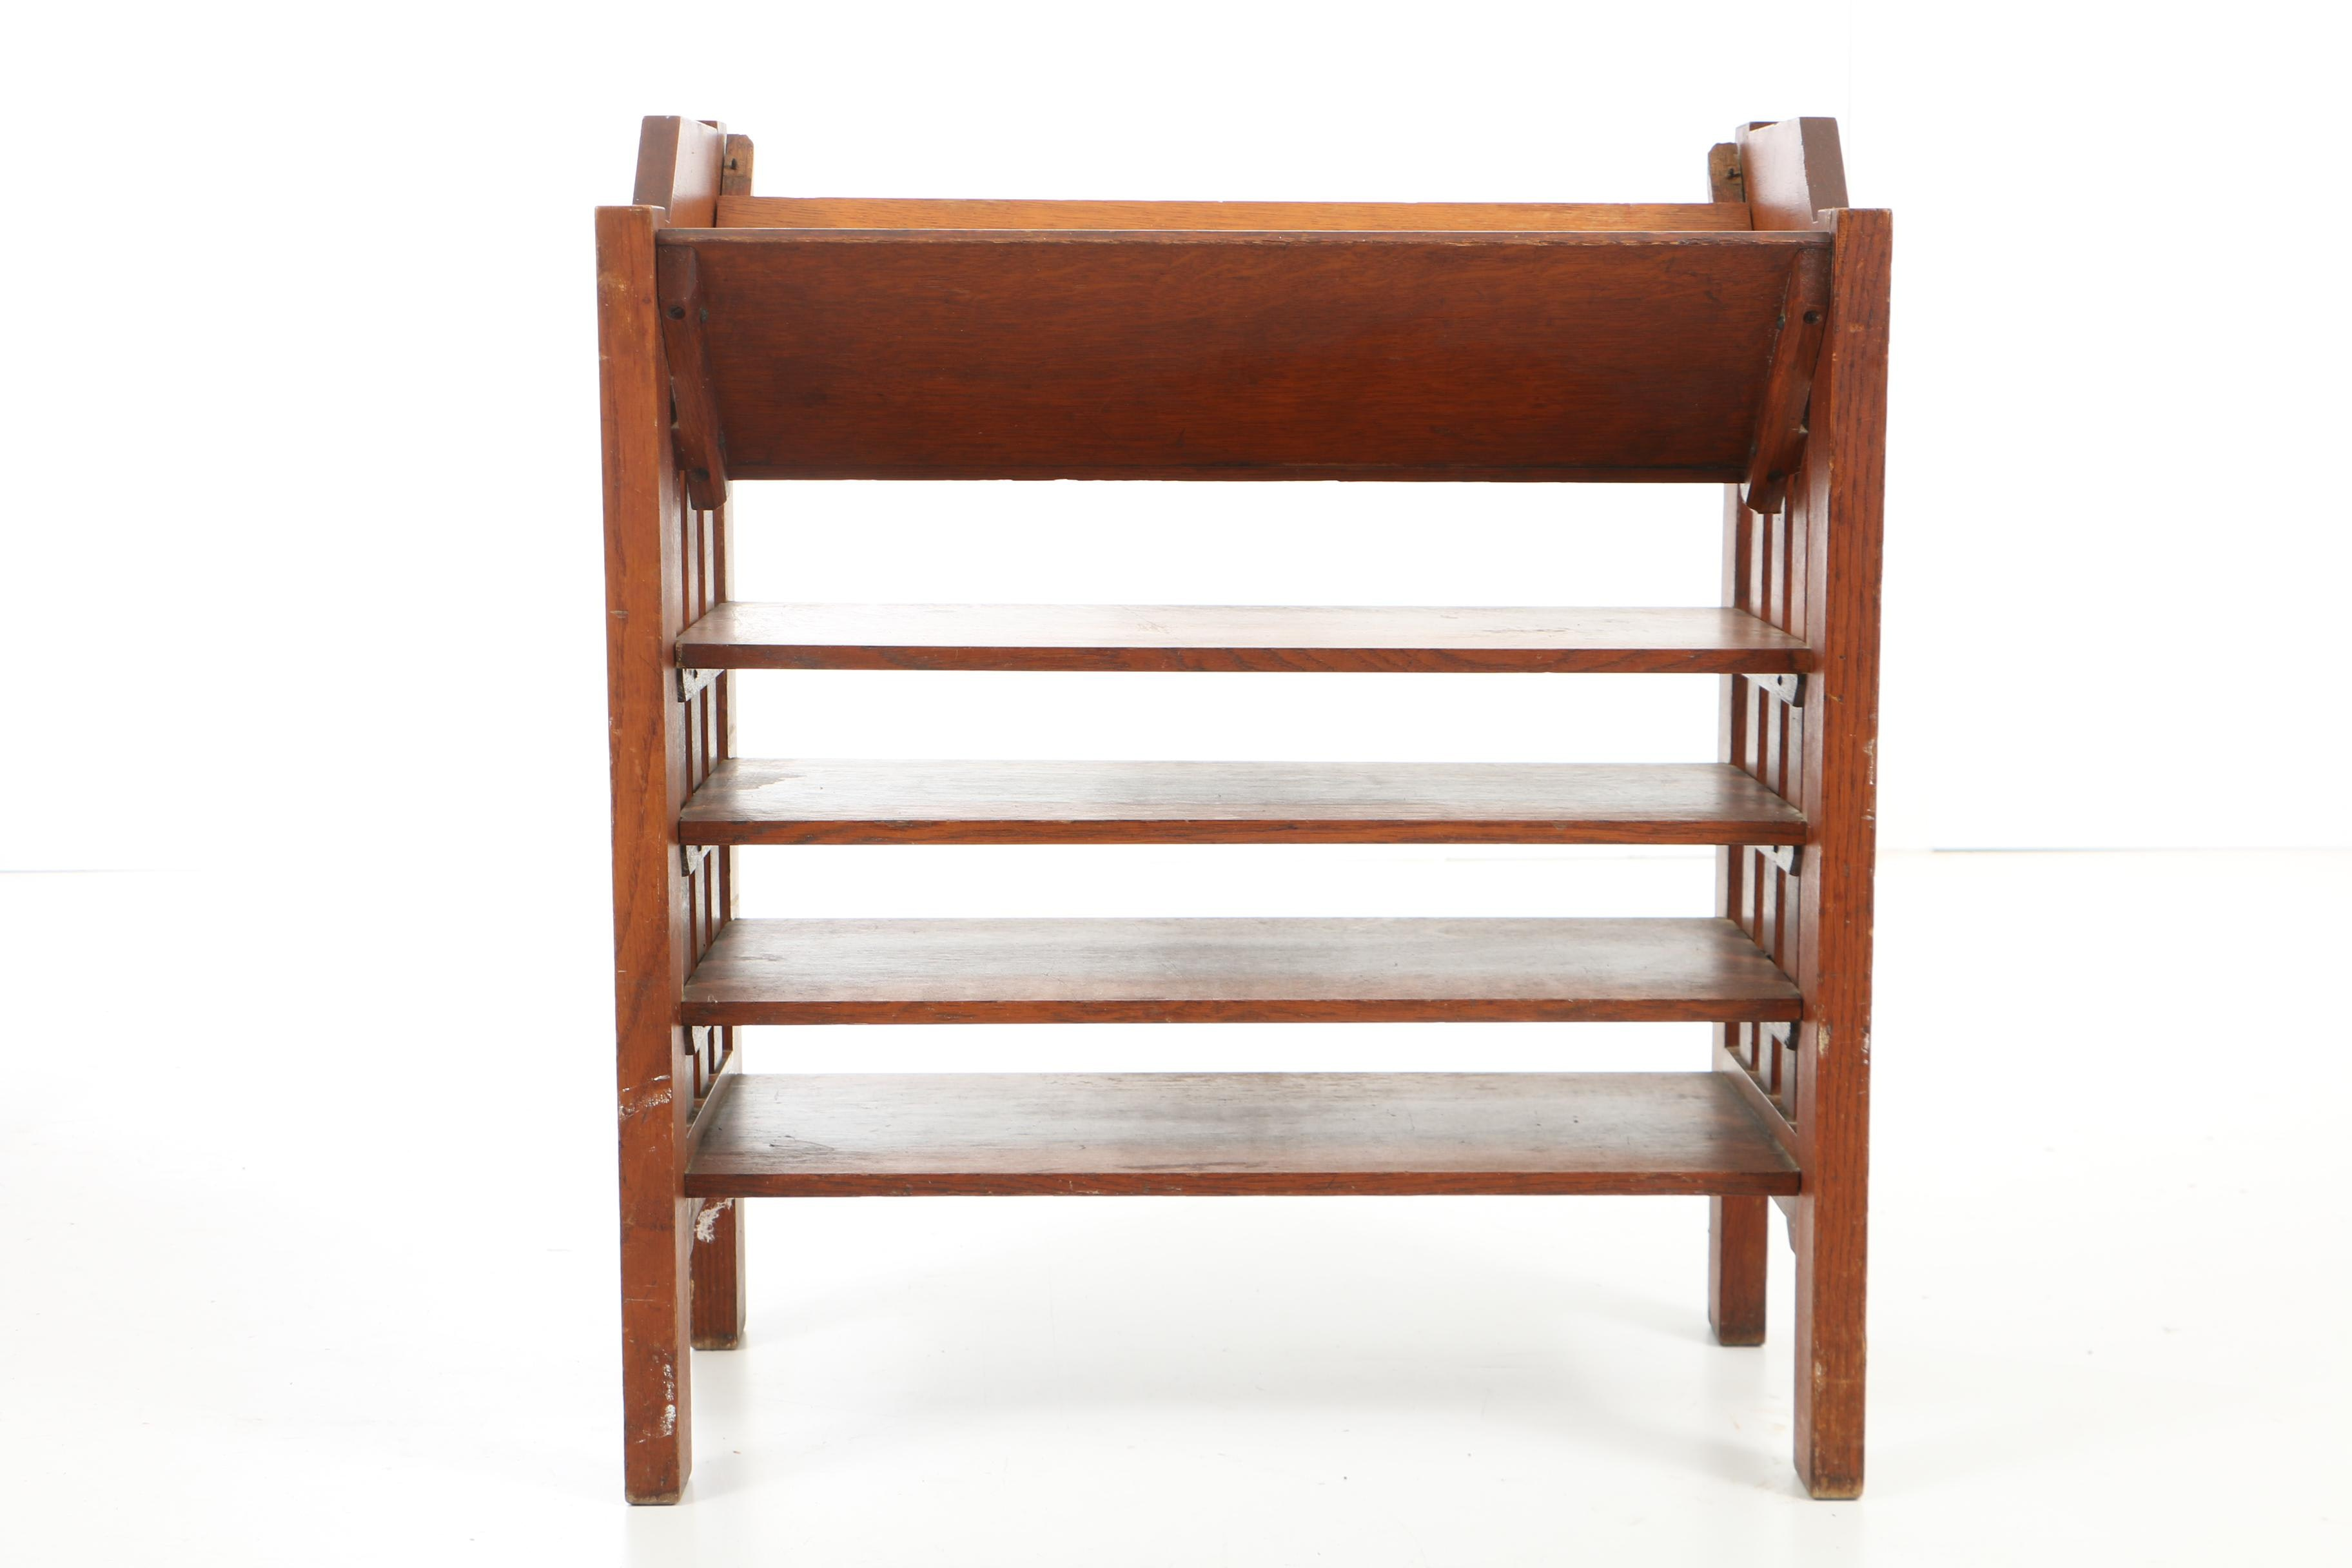 Early 20th Century Arts and Crafts Oak Book Trough Stand